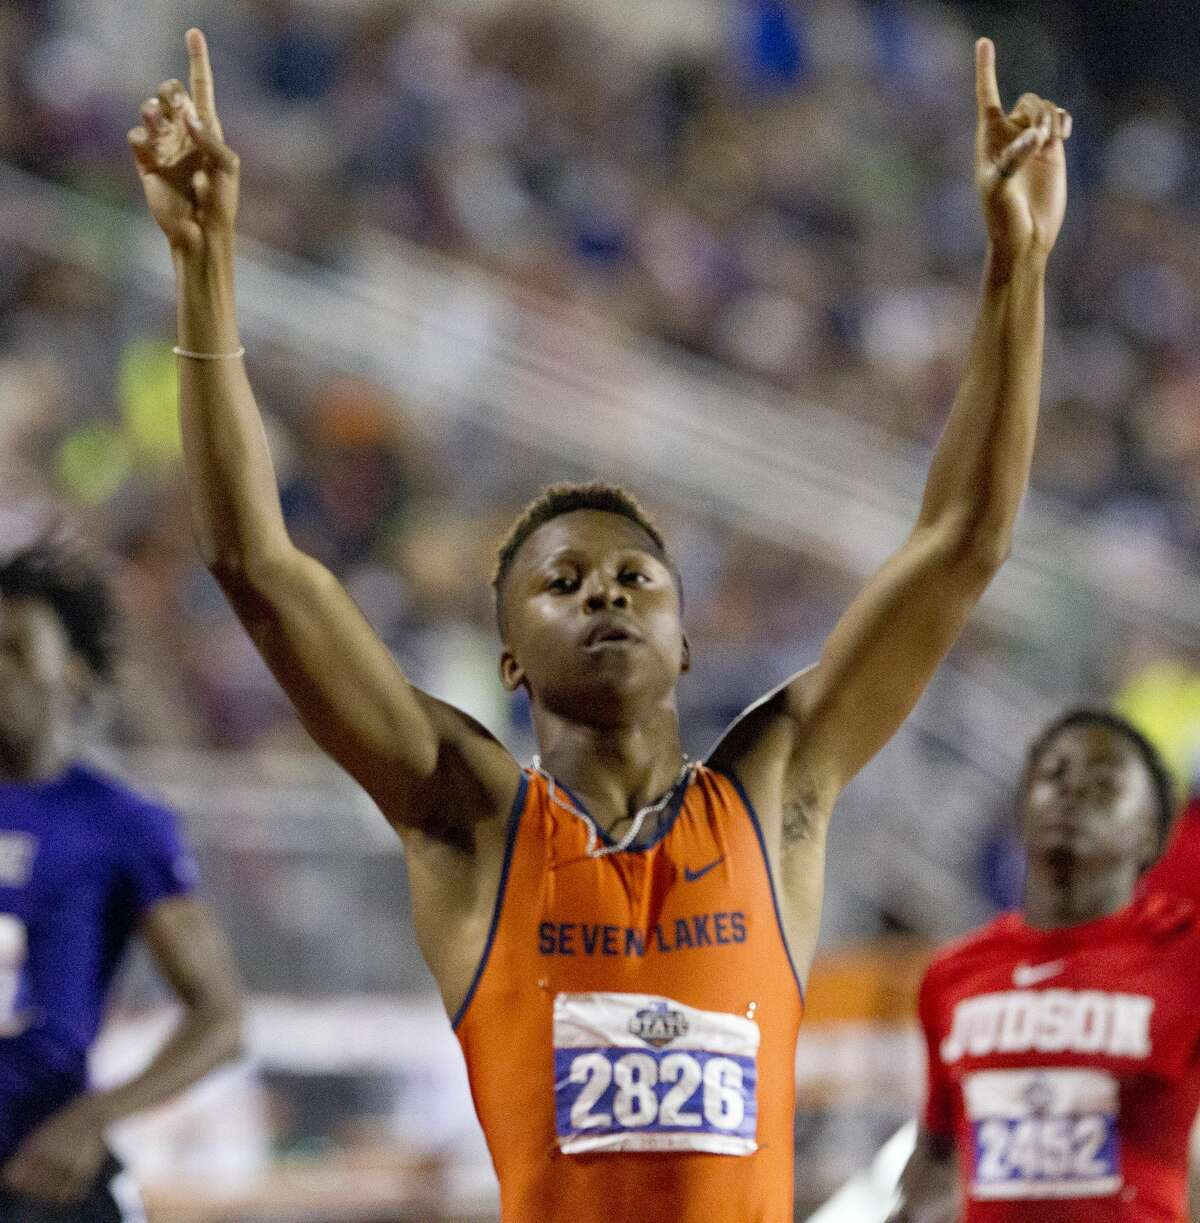 Lance Nath Broome of Katy Seven Lakes reacts after winning the 6A boys 200-meter dash during the UIL State Track & Field Championships at Mike A. Myers Stadium, Saturday, May, 11, 2019, in Austin.